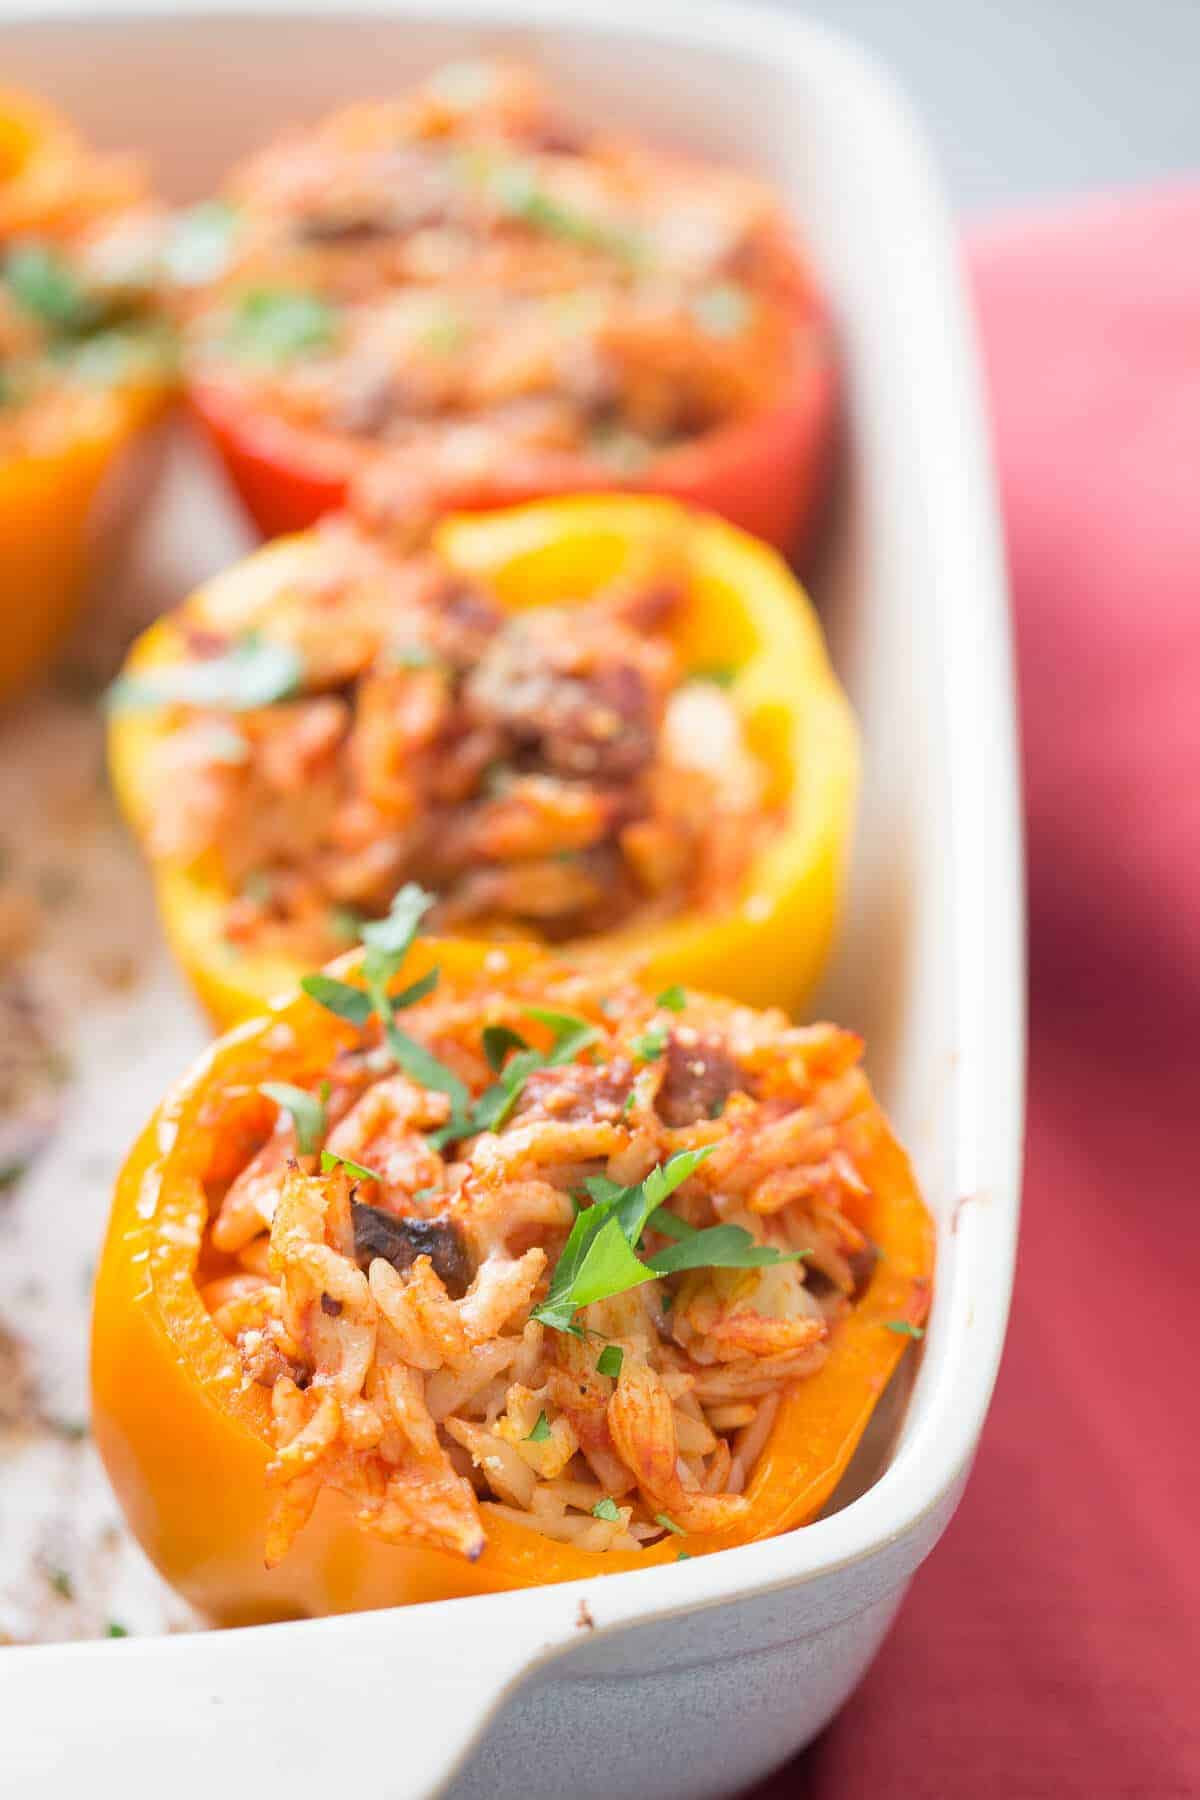 Italian stuffed pepper are going to wow your family! They are filled with sausage and pasta; everything kids love!